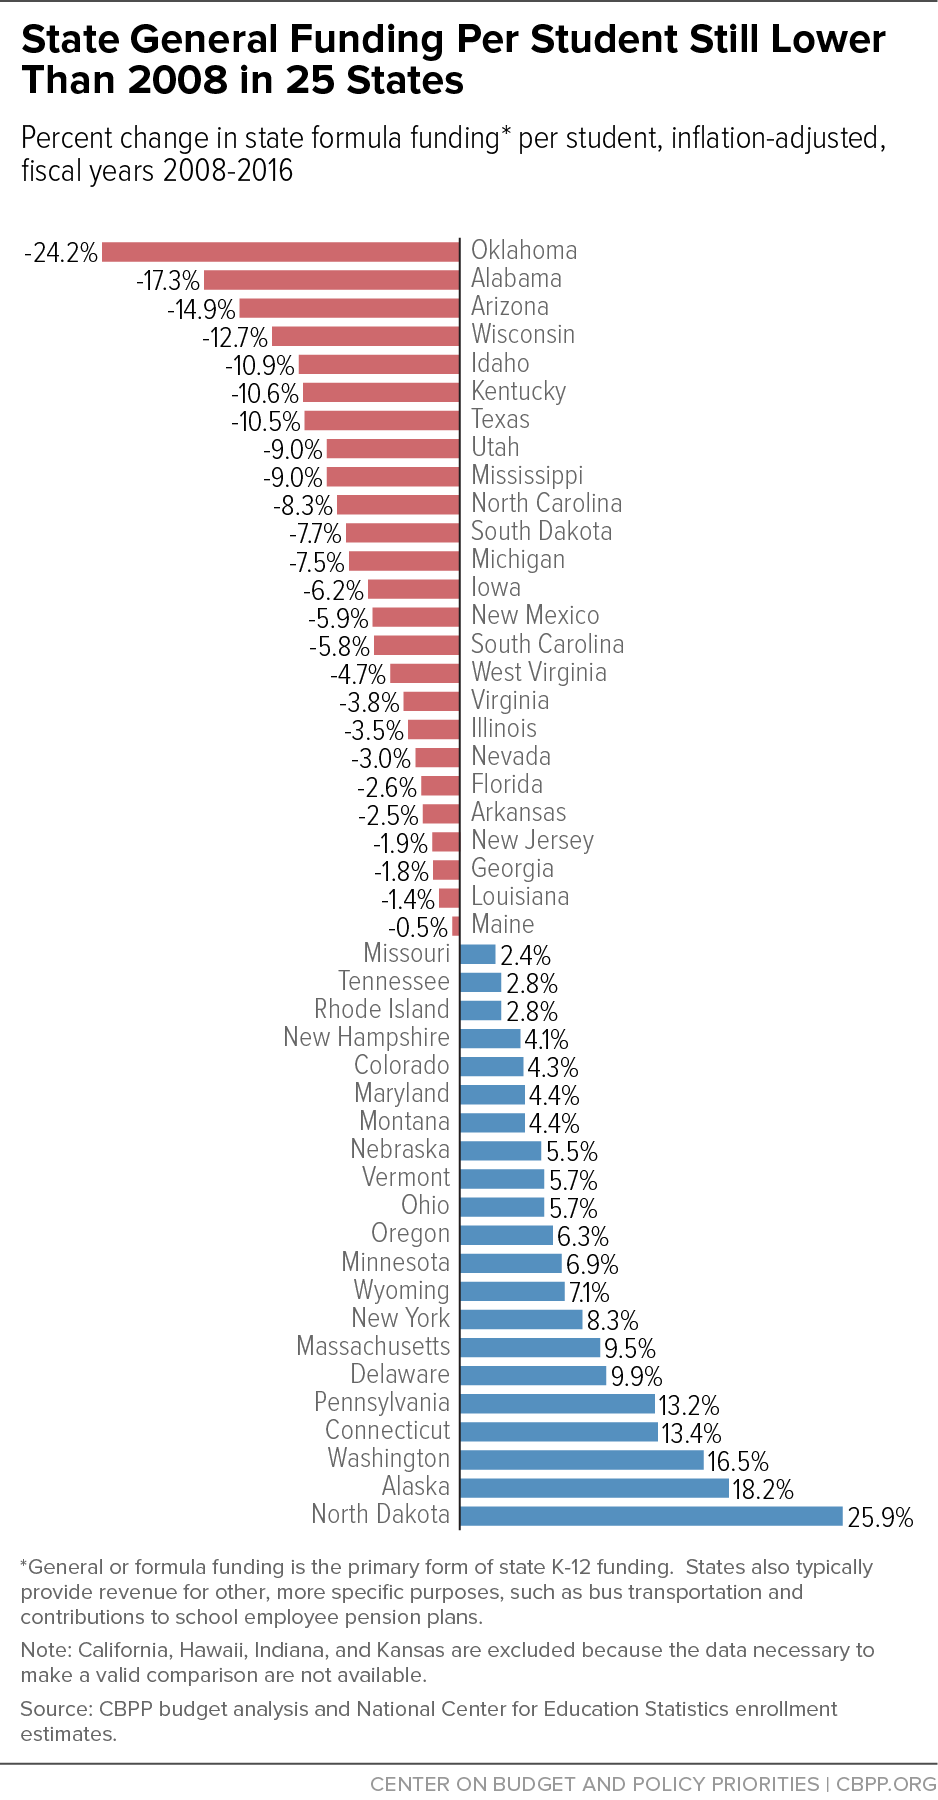 State General Funding Per Student Still Lower Than 2008 in 25 States